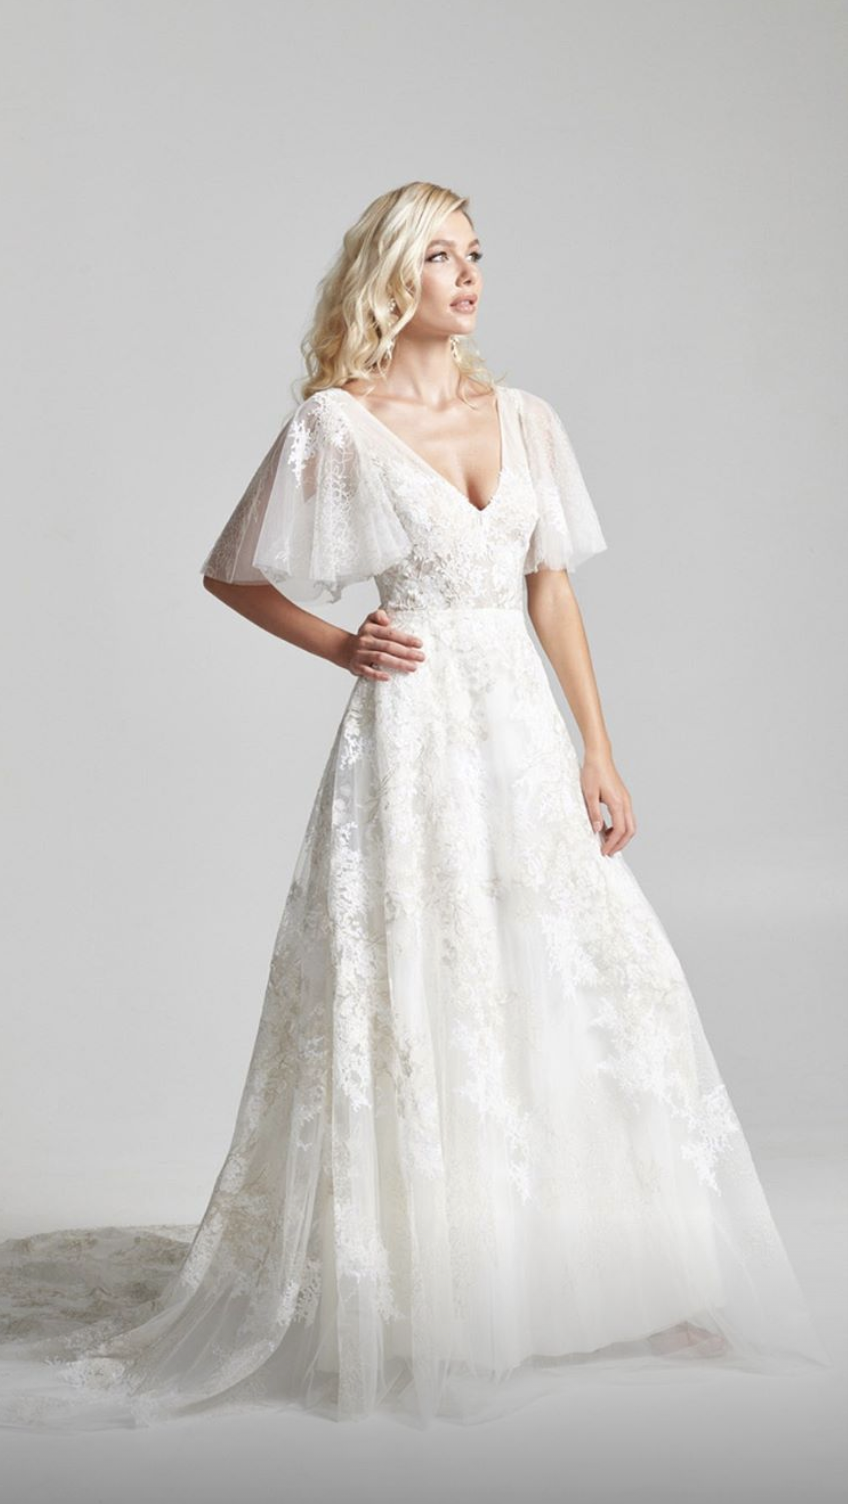 Rebecca Schoneveld 2020 bridal collection is available at Arizona Bridal Shop, Neue Bride in Mesa, Arizona! Come shop for modern wedding dresses like the Paloma A-line gown with flutter sleeve and beautiful intricately embroidered train.